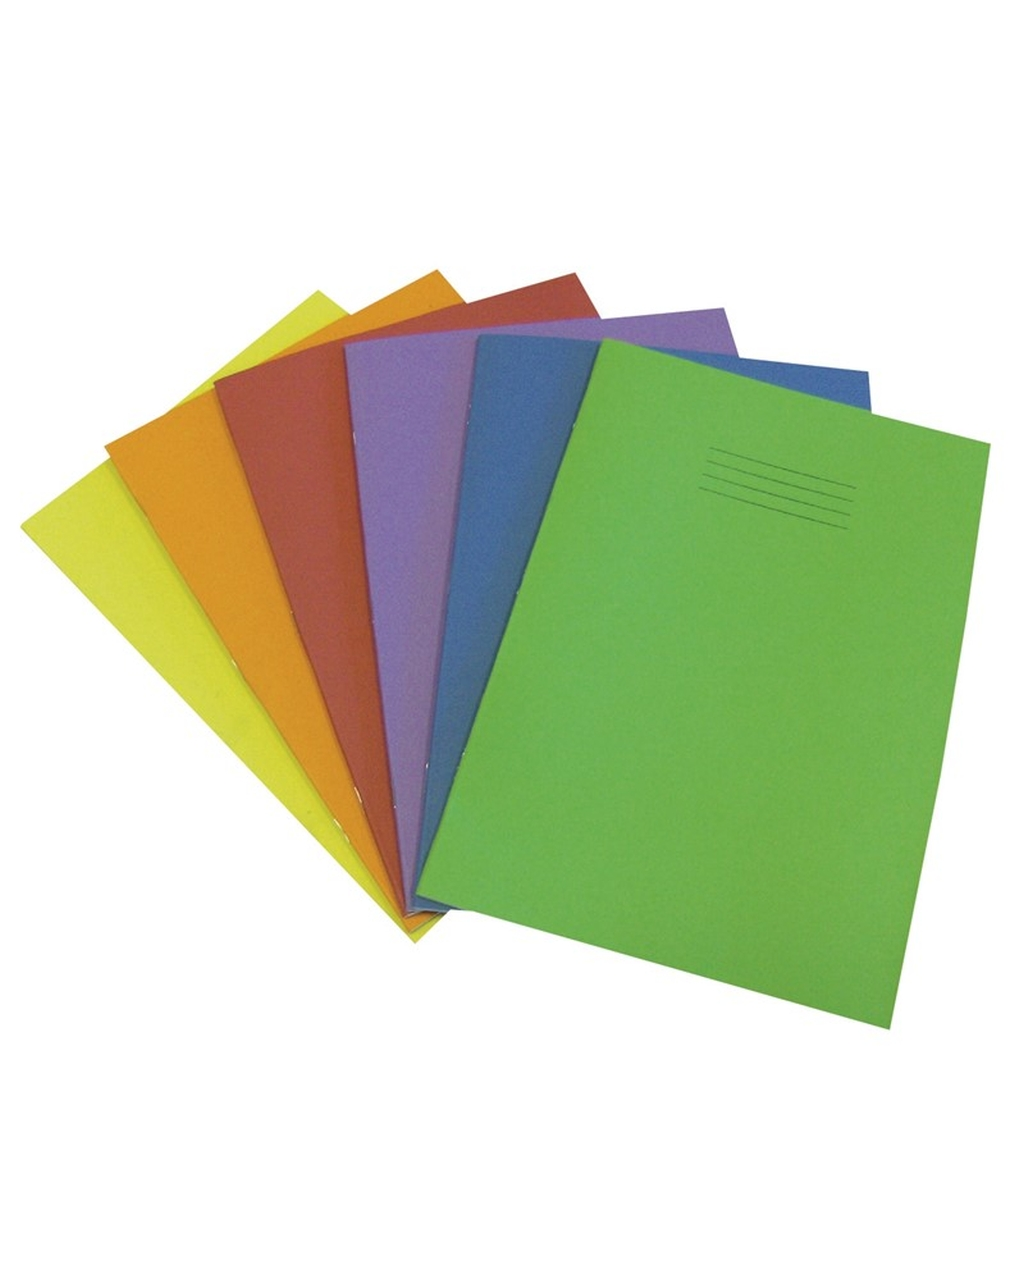 Exercise Book A4 (297 x 210mm) Light Blue Cover 8mm Ruled / Plain Alternate Pages 64 Pages